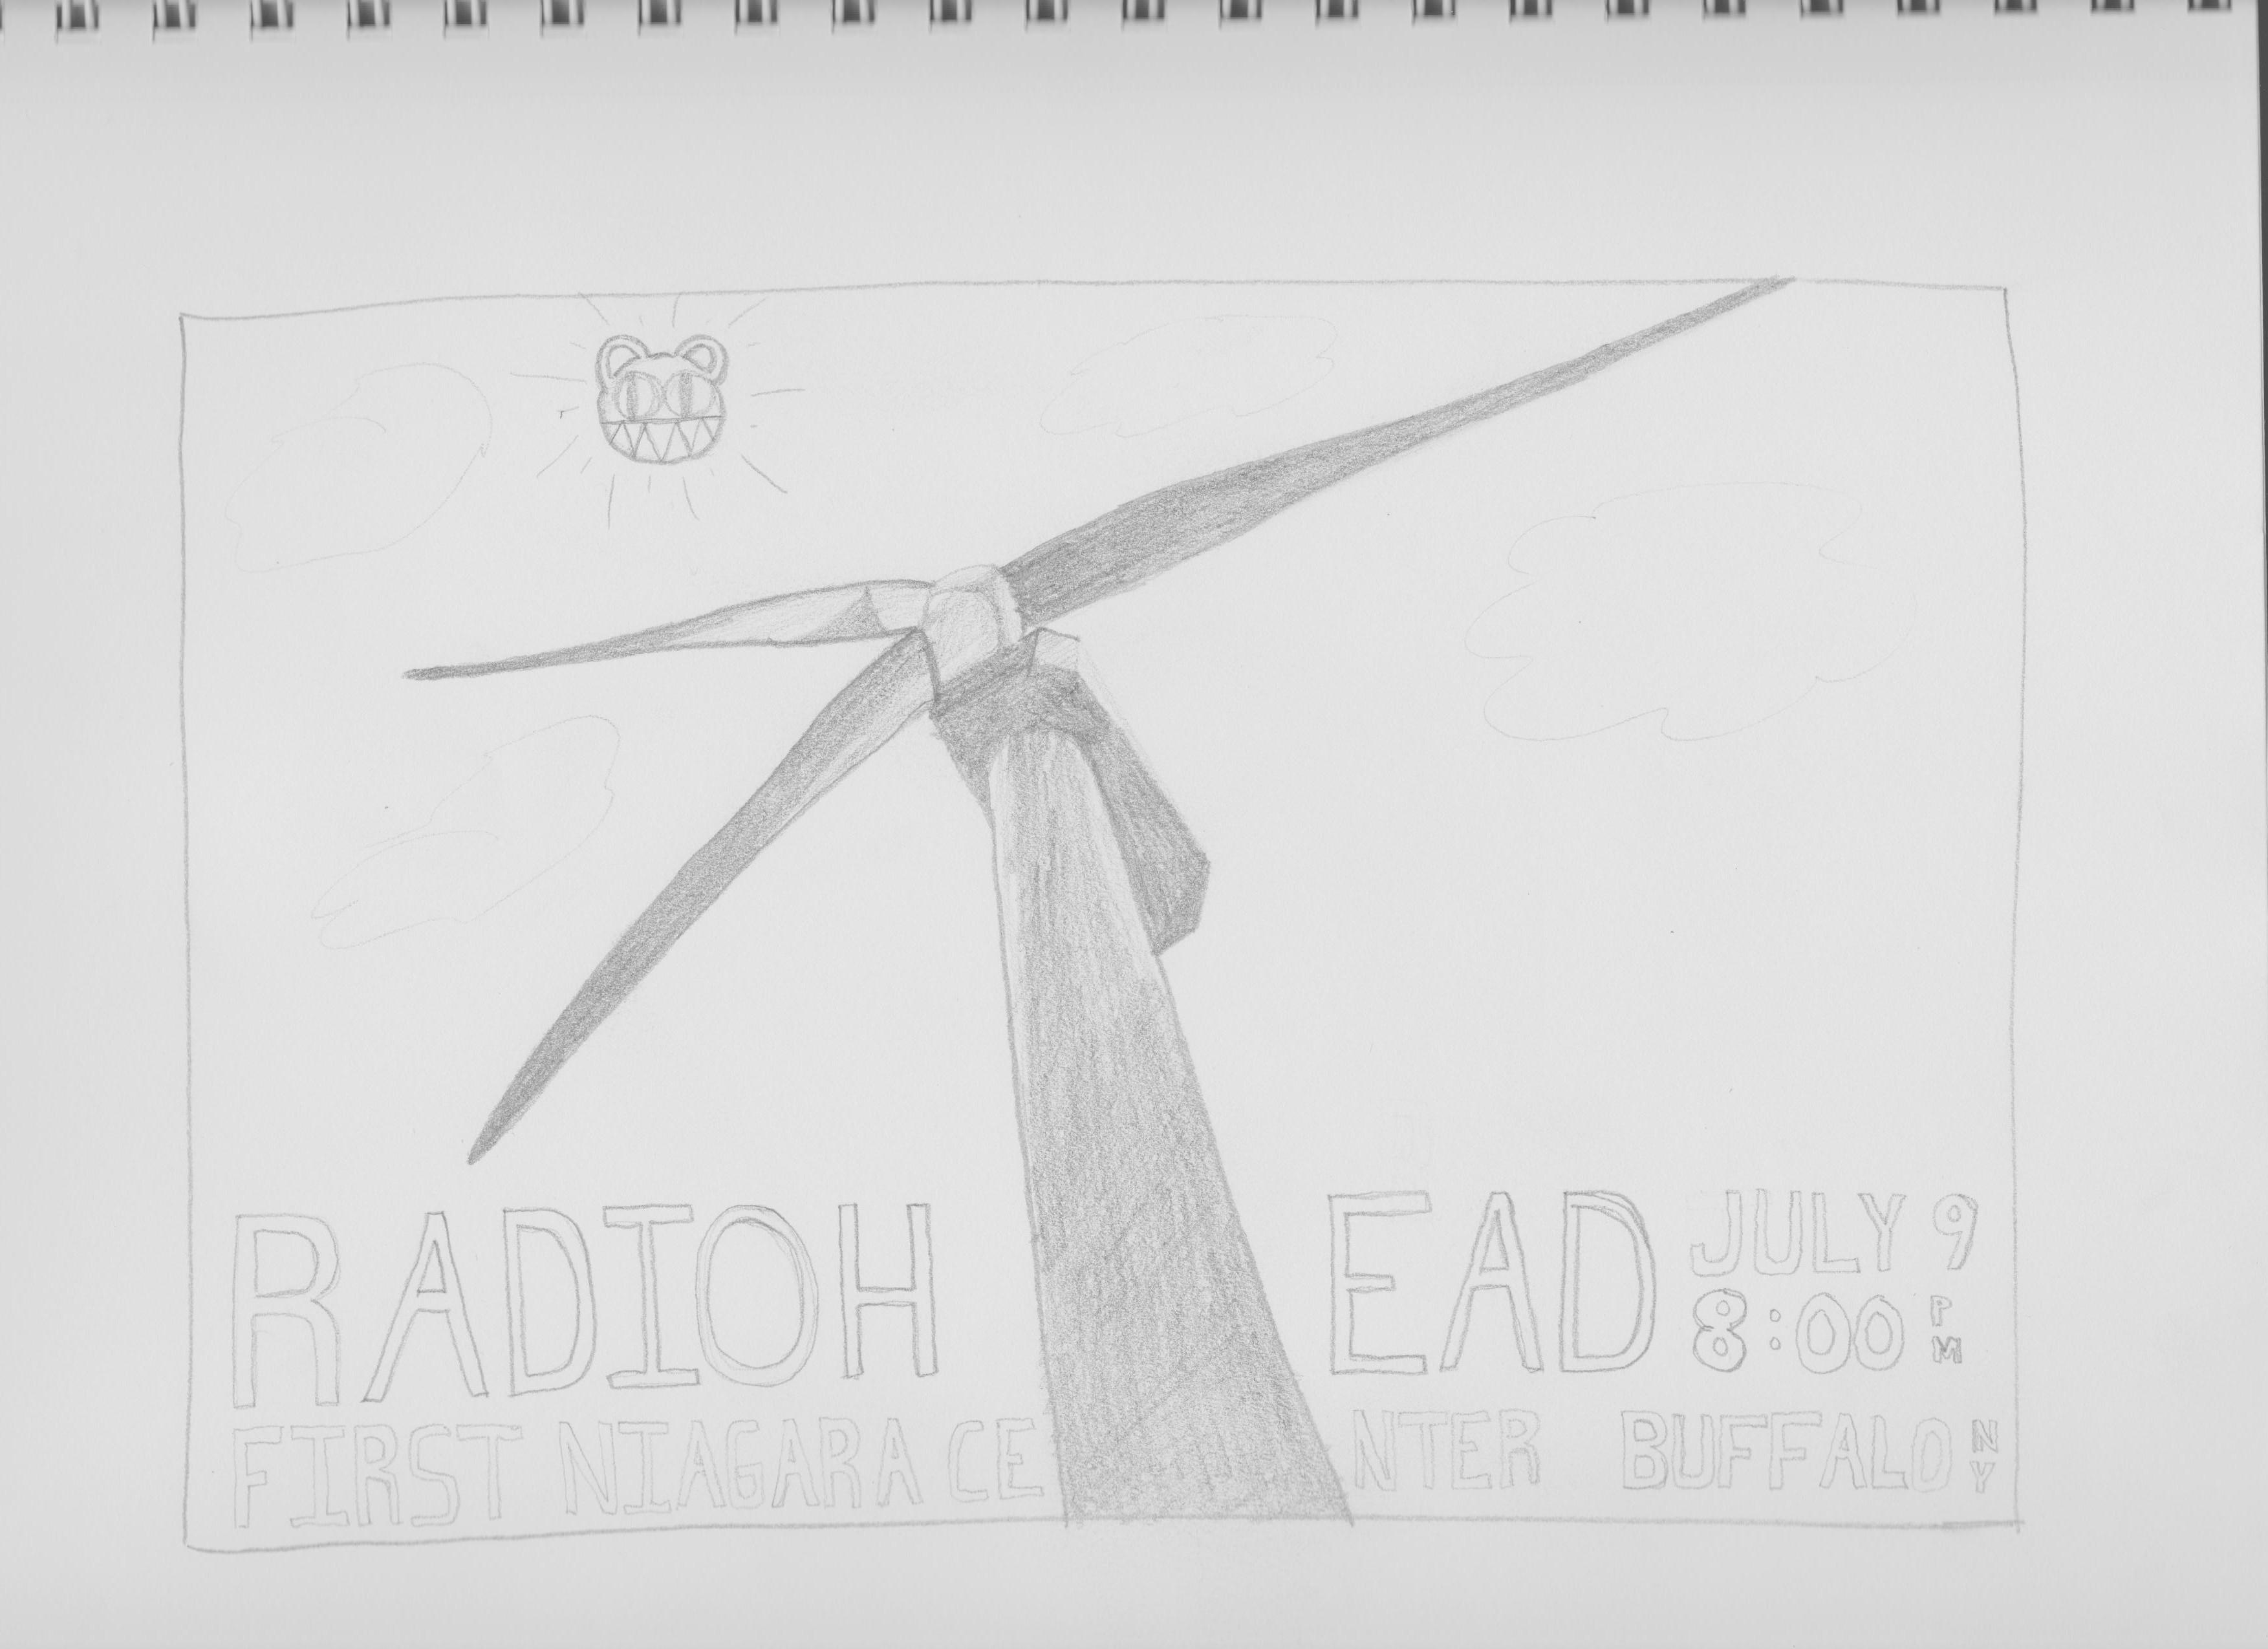 If Radiohead came to Buffalo... - image 6 - student project